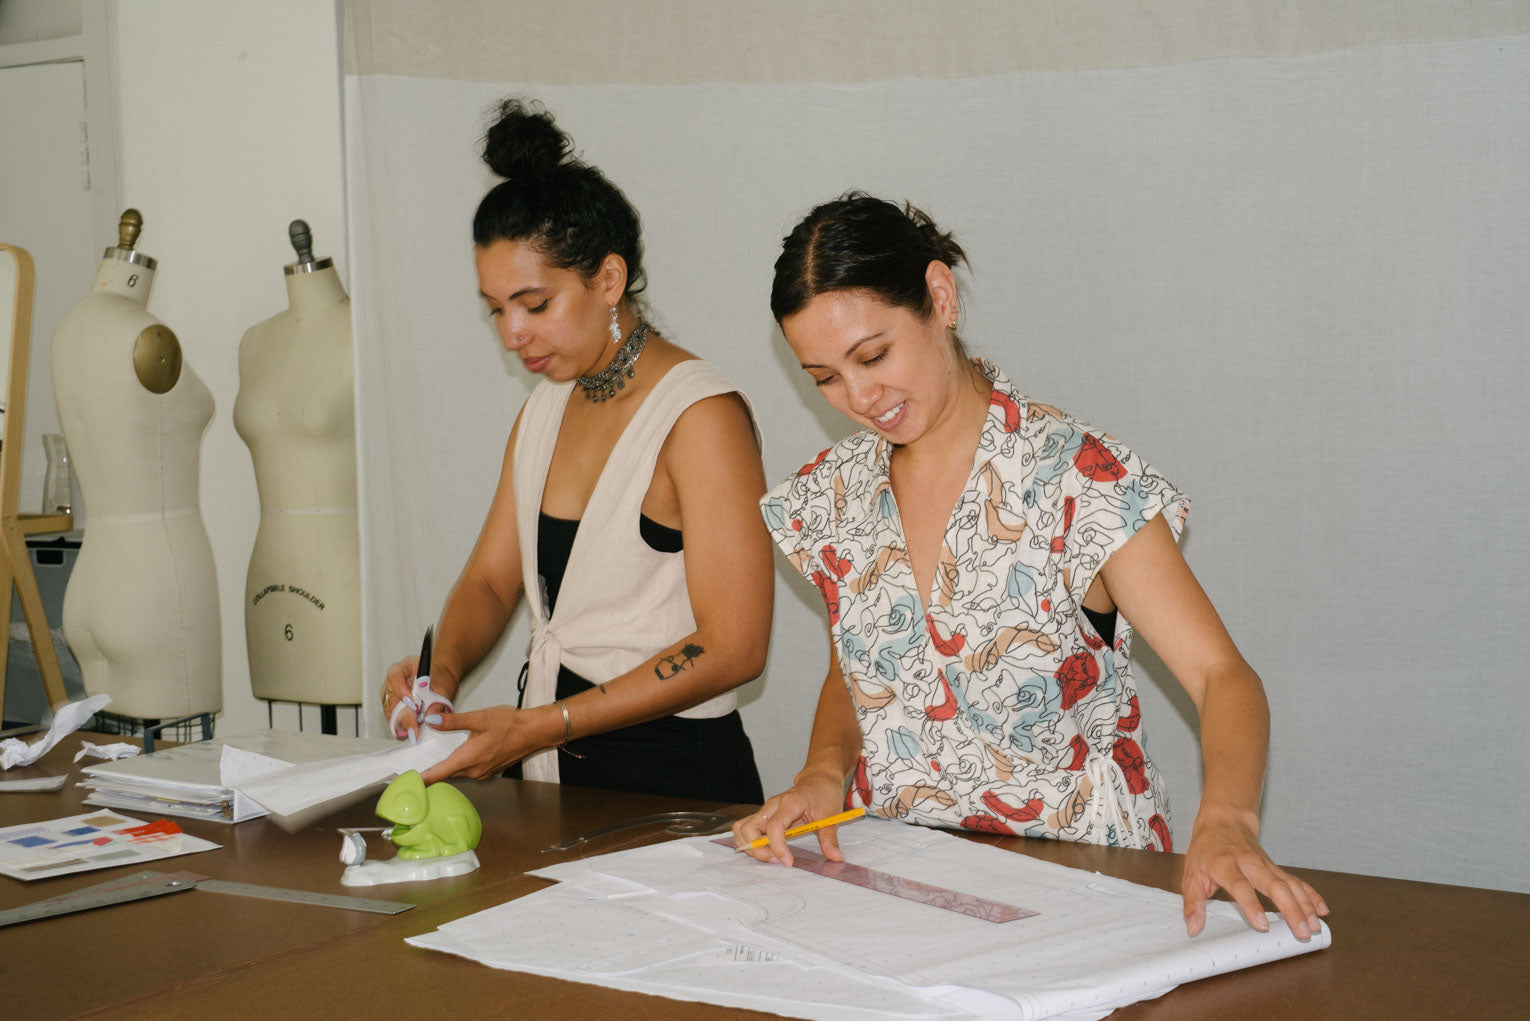 The founders of Selva Negra work side by side at a table with garment production materials around them